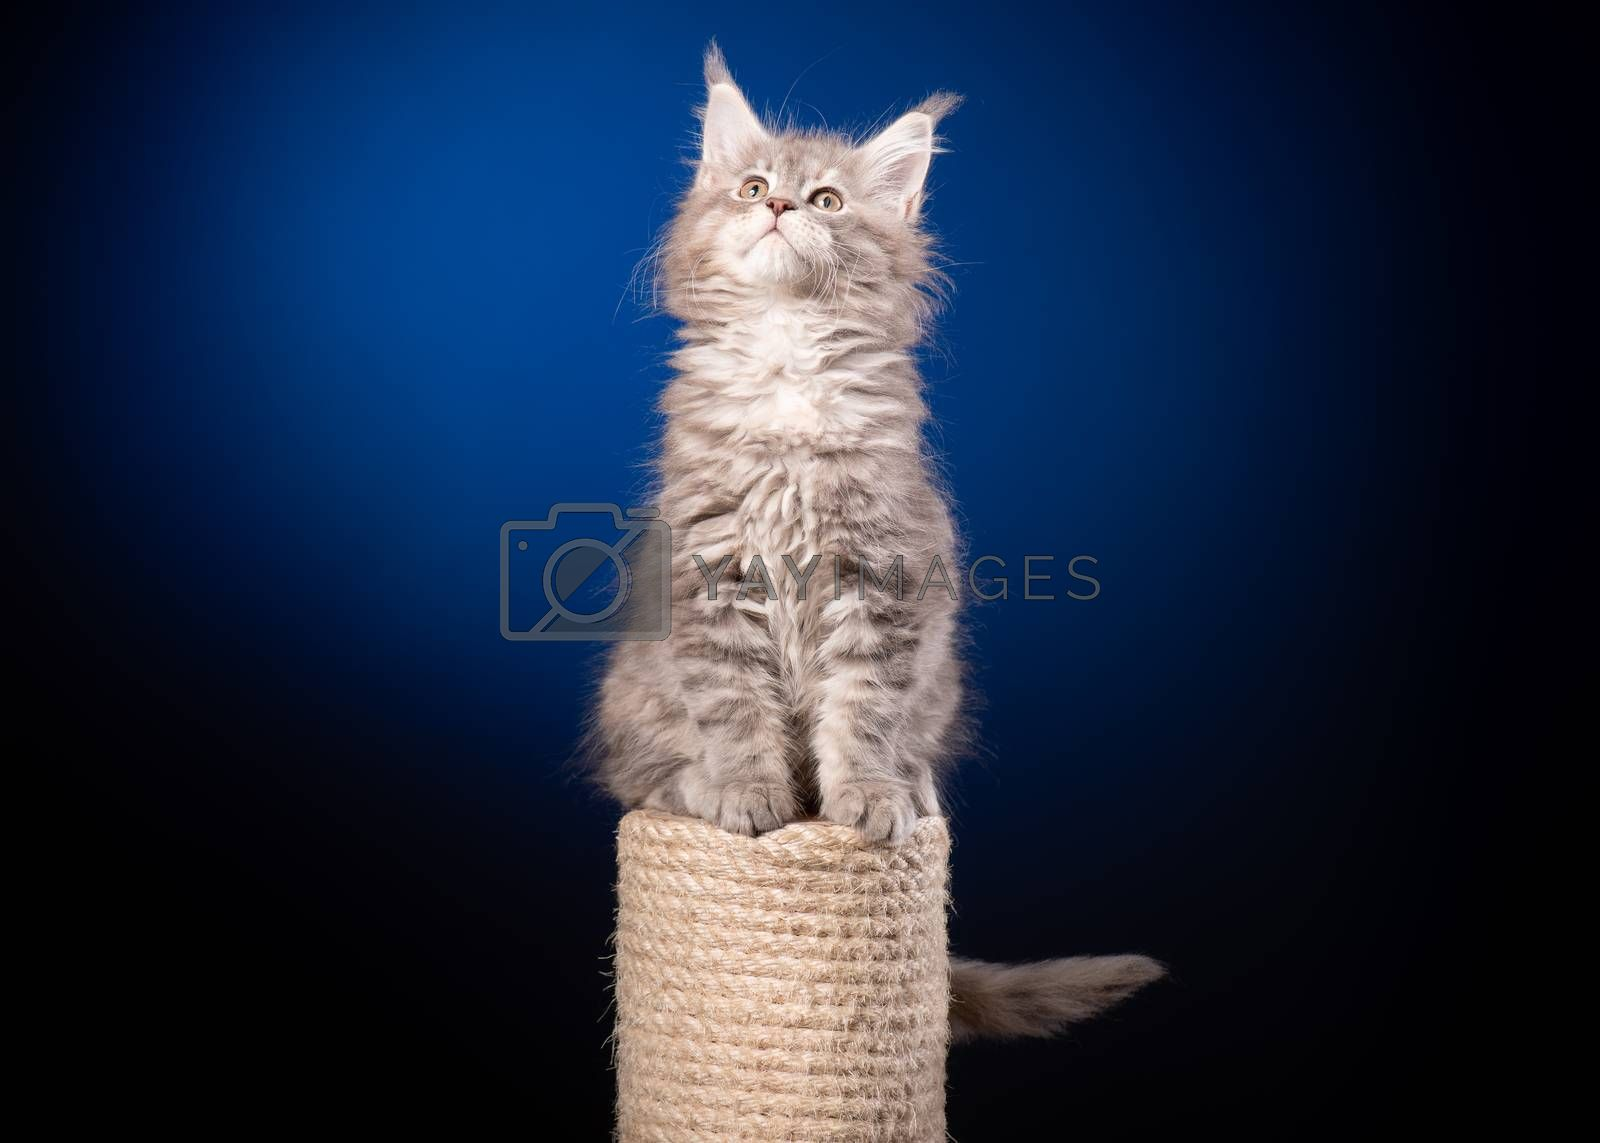 Maine Coon kitten 2 months old sitting on scratching post for cats. Studio photo of beautiful gray domestic kitty on blue background.